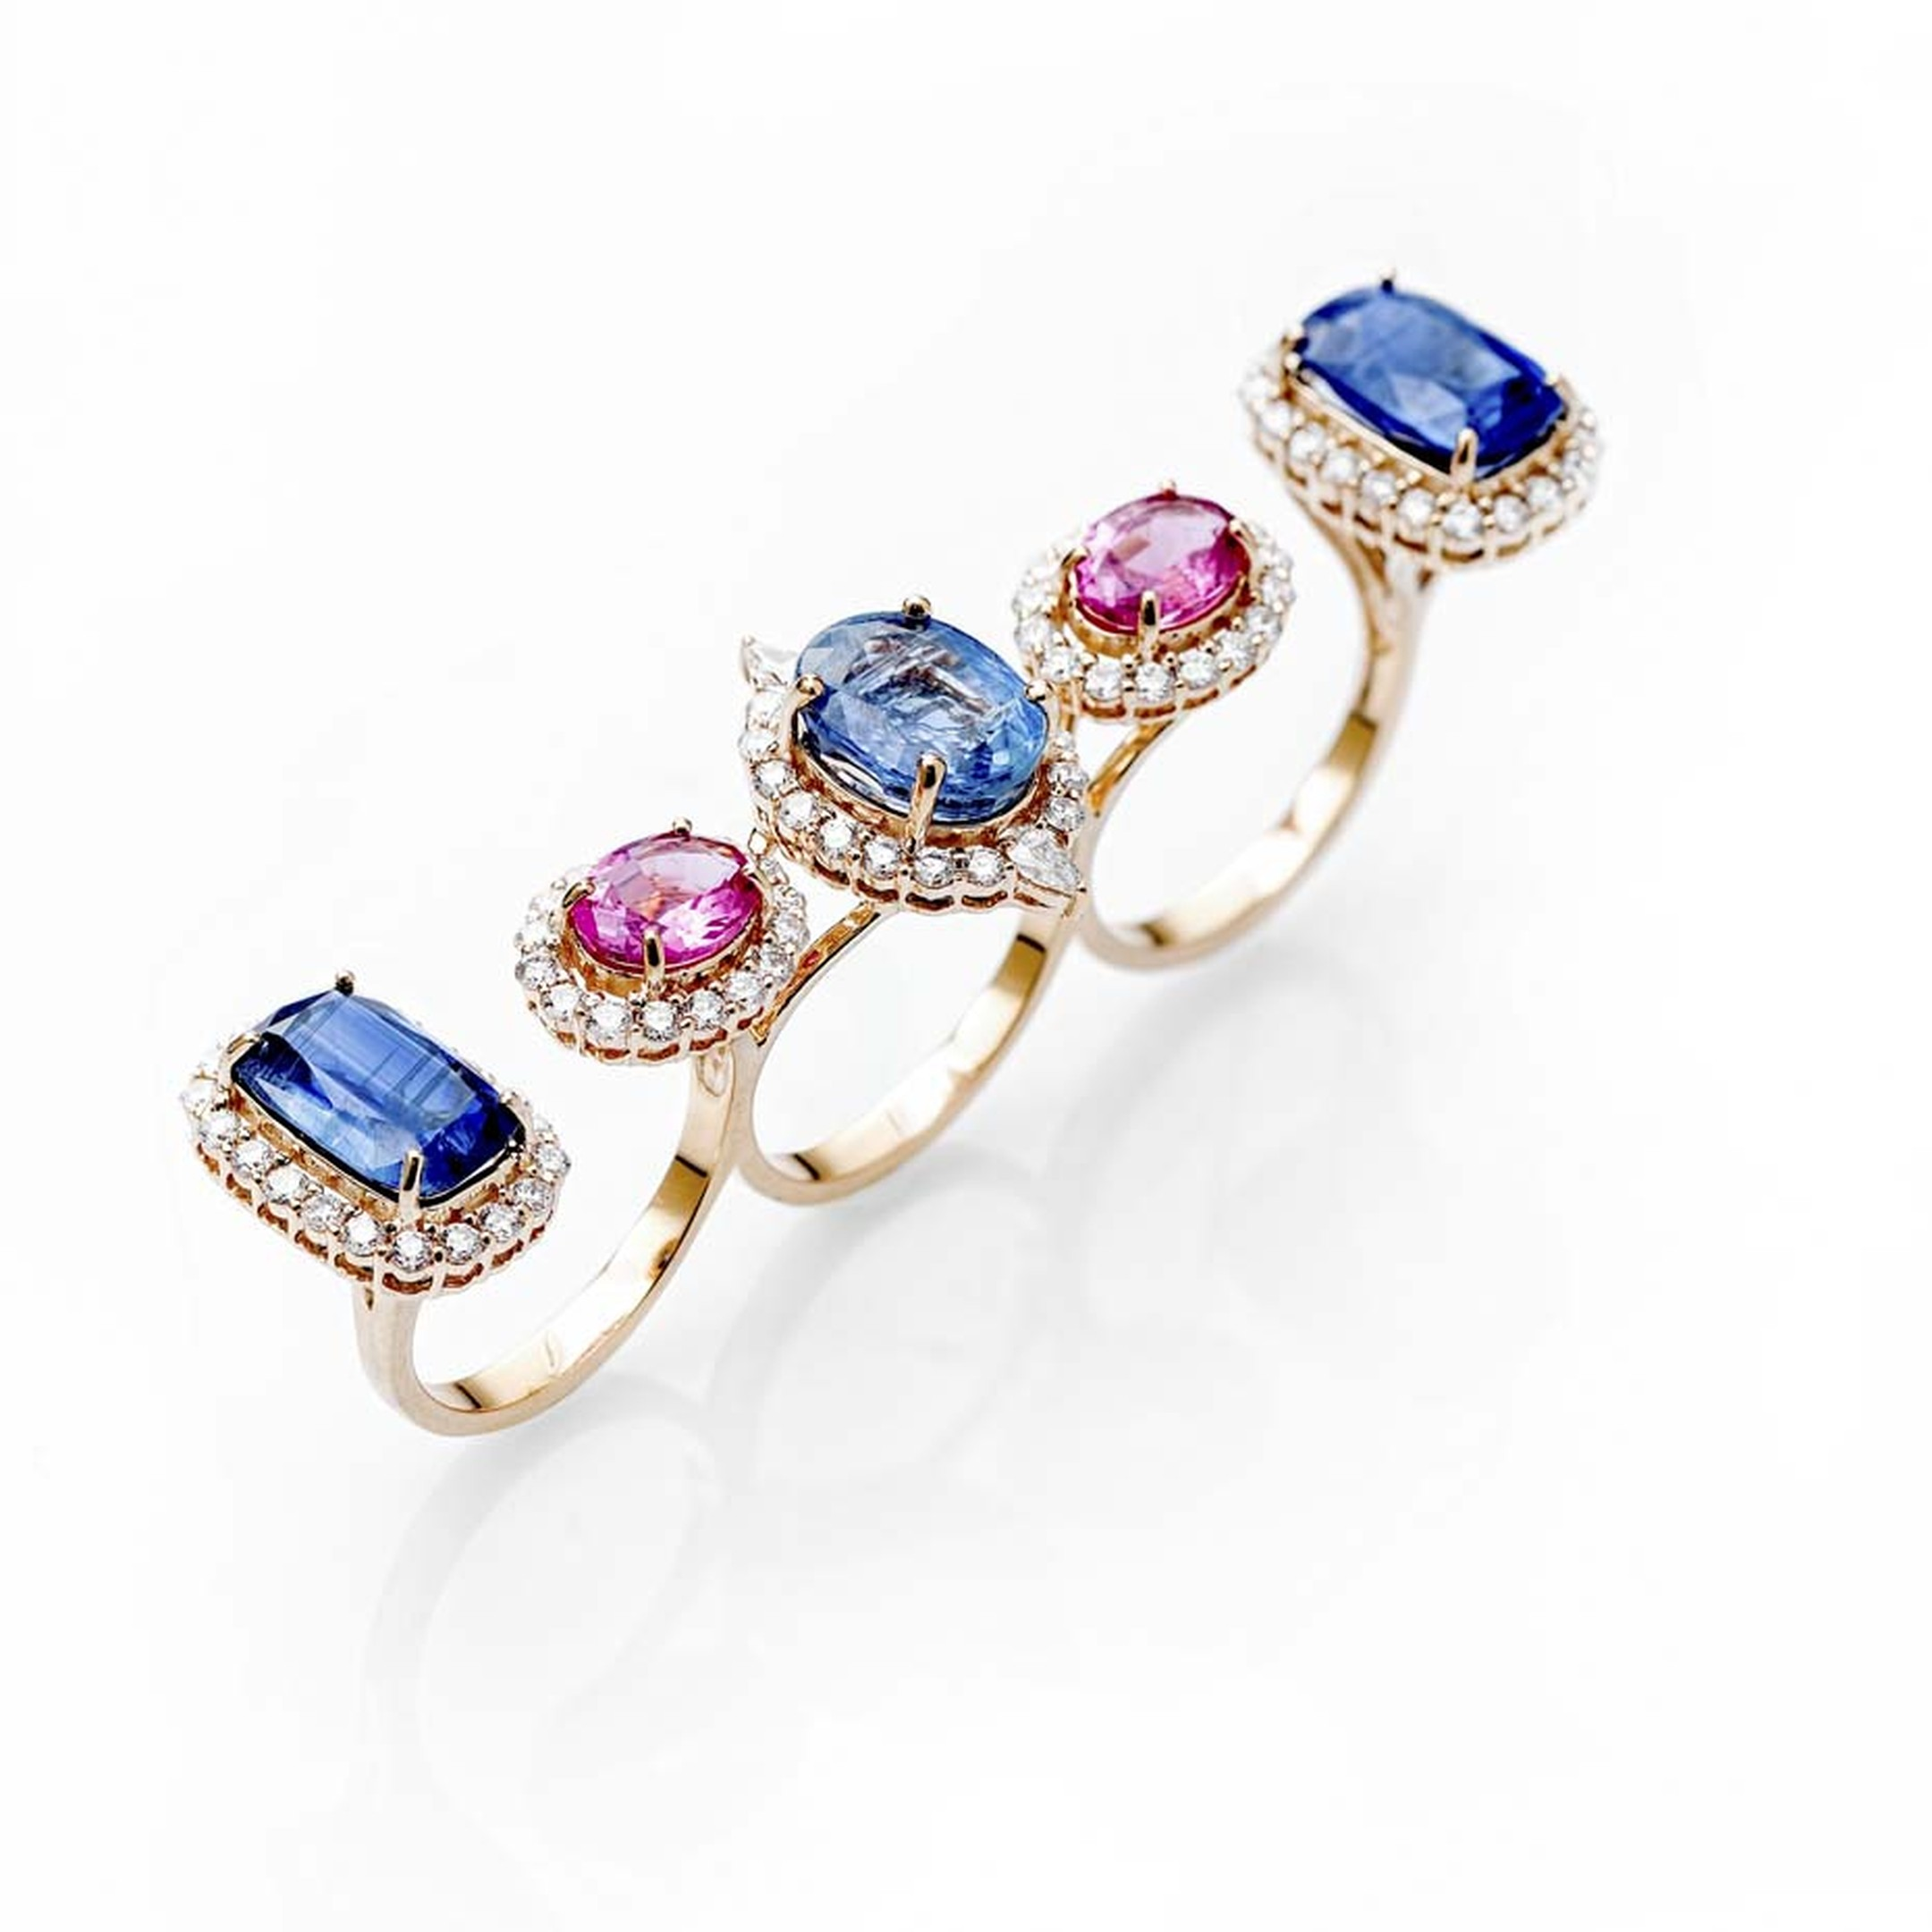 Fahra Khan_Le Jardin Exotique_A multi-finger kyanite, rubellite and diamond ring in 18ct yellow gold by Farah Khan jewellery.jpg